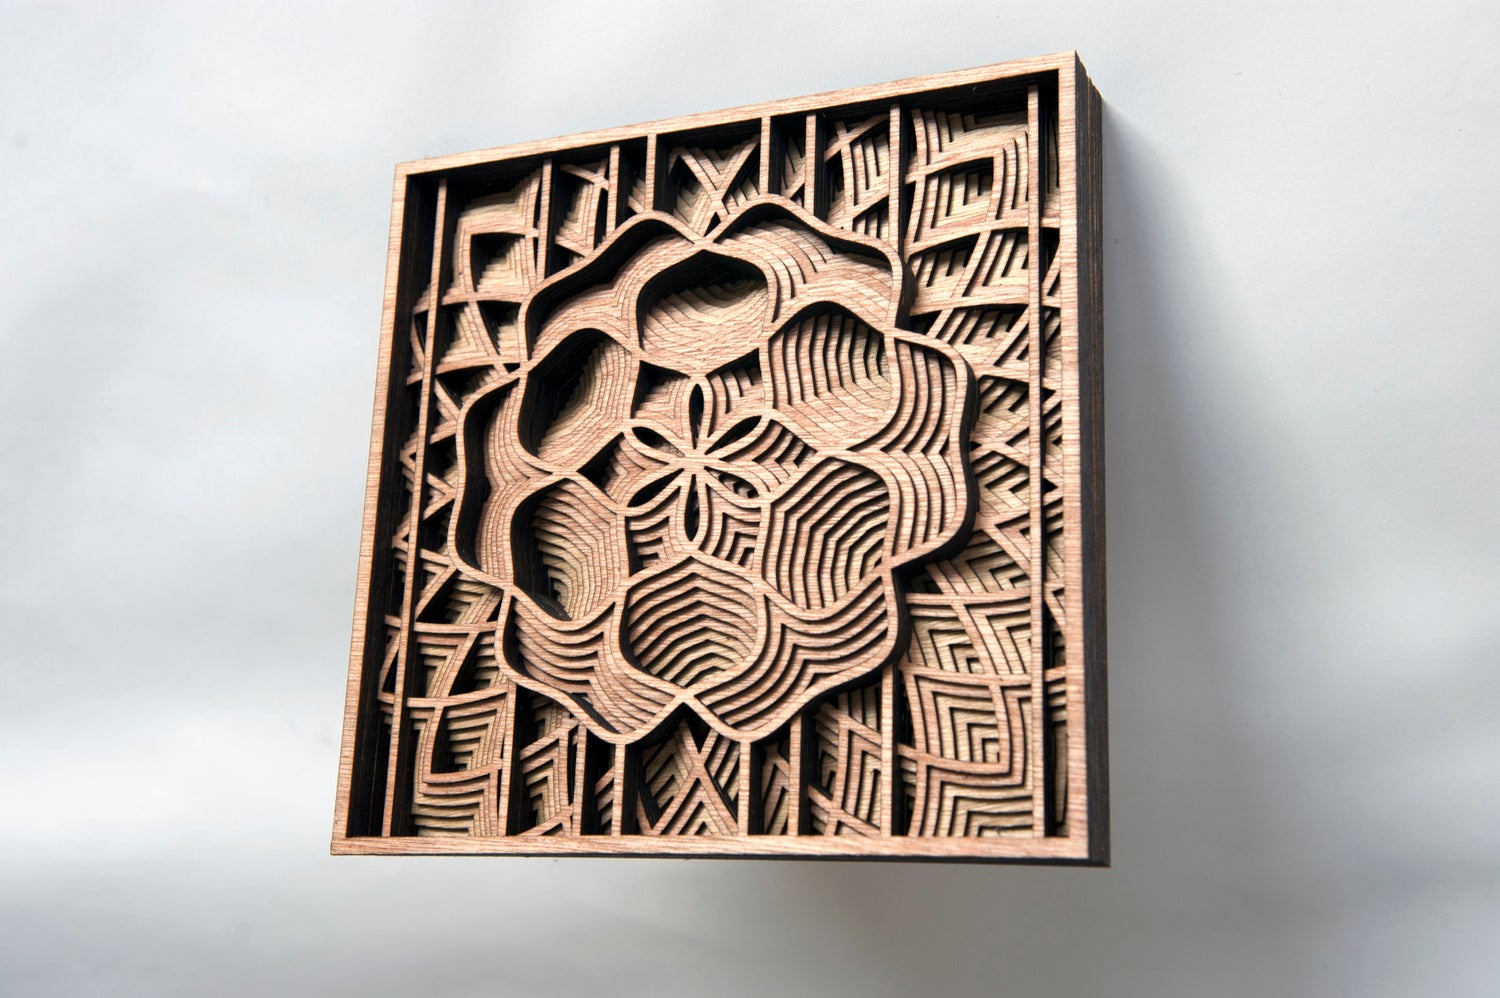 Artist Creates Stunning Wooden Sculptures With Laser Cutting Tech